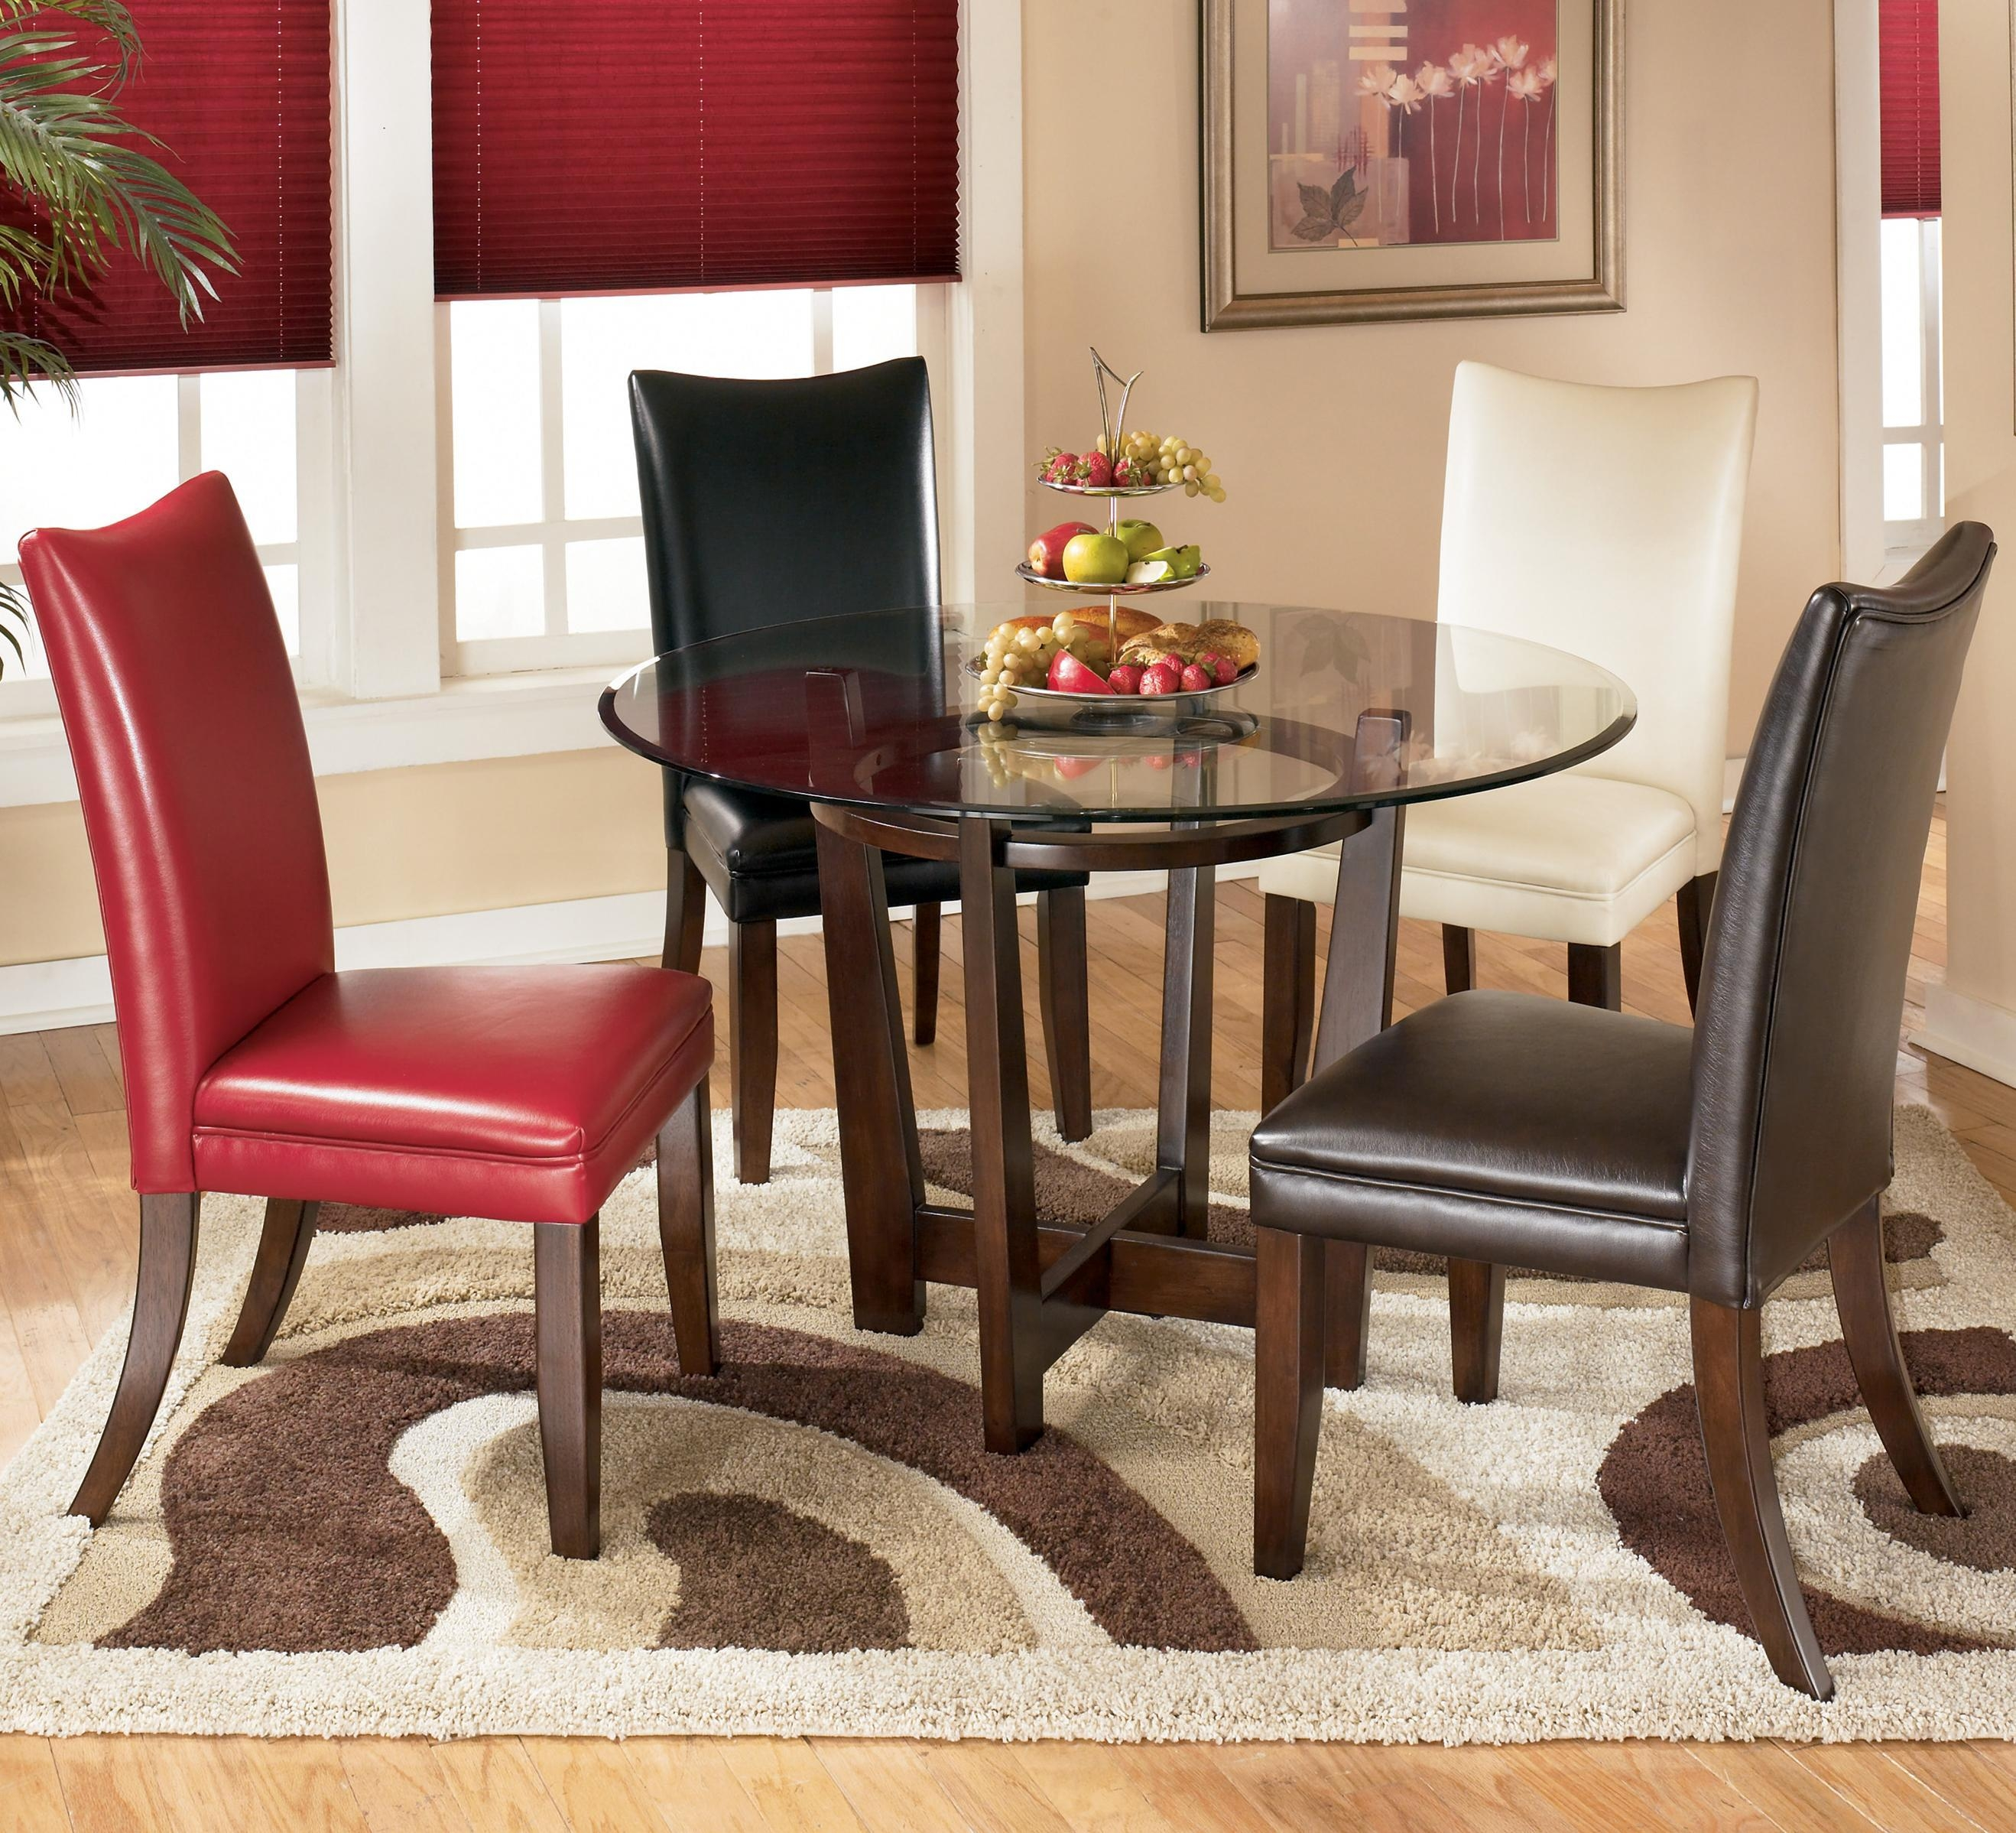 5 Piece Round Dining Table Set With 4 Different Color Upholstered Layjao